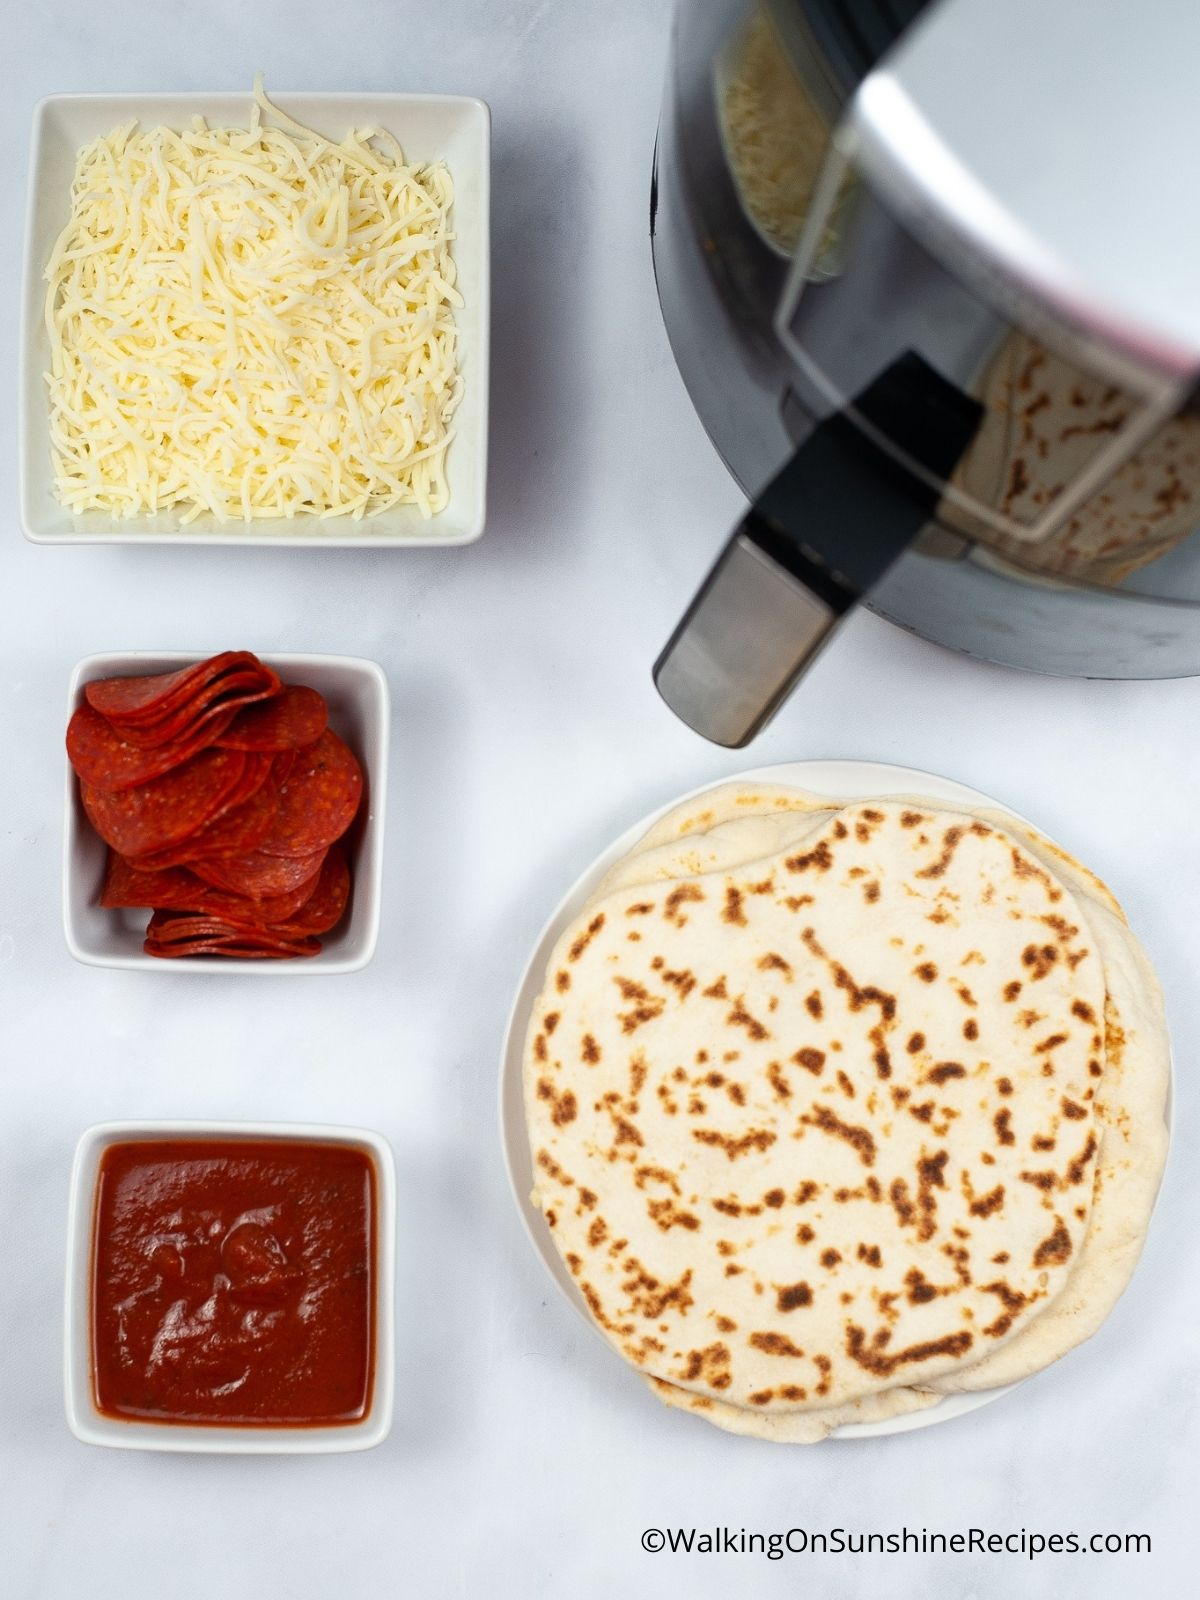 Ingredients for Pre-made crust air fryer pizza.